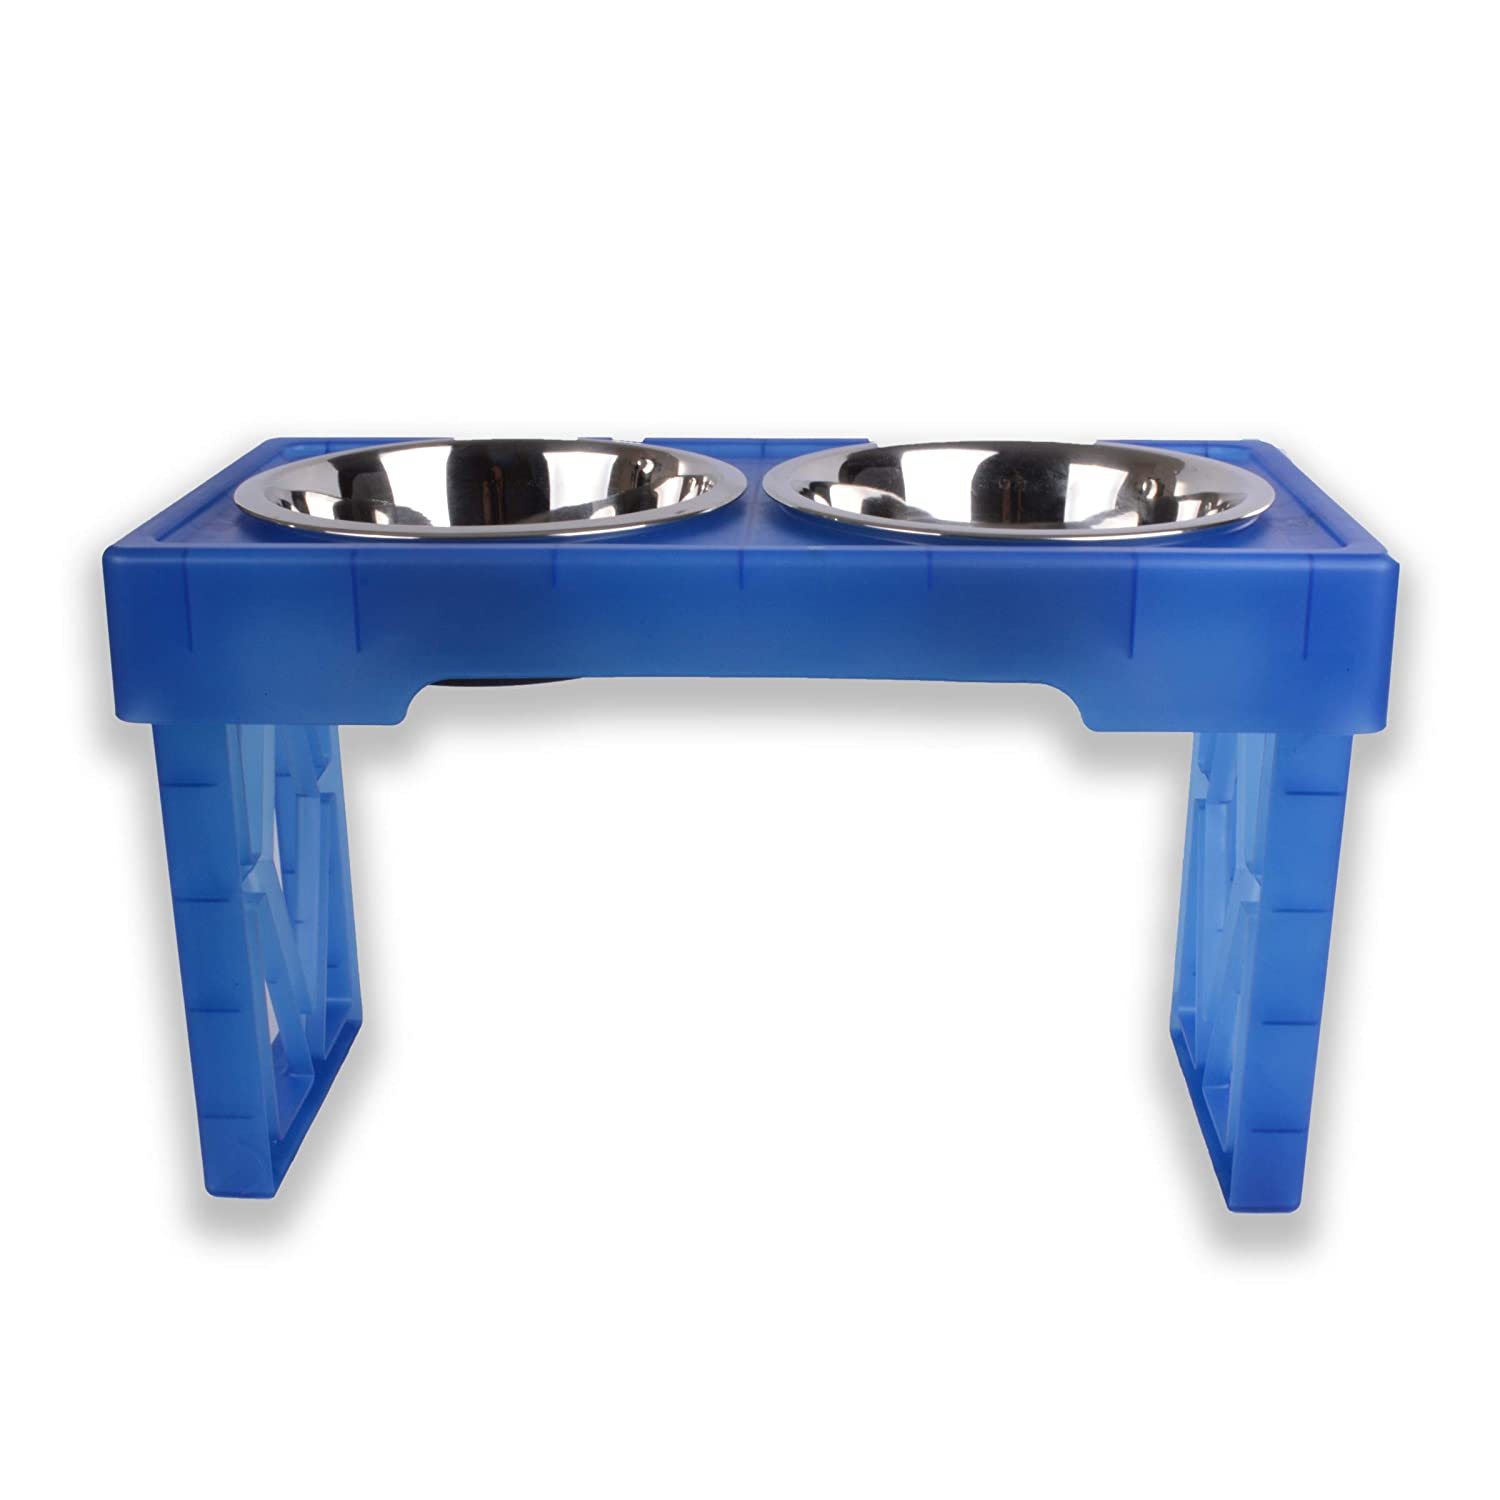 Our Pets 2550014115 Pet Zone Designer Diner, Royal bluee, One Size